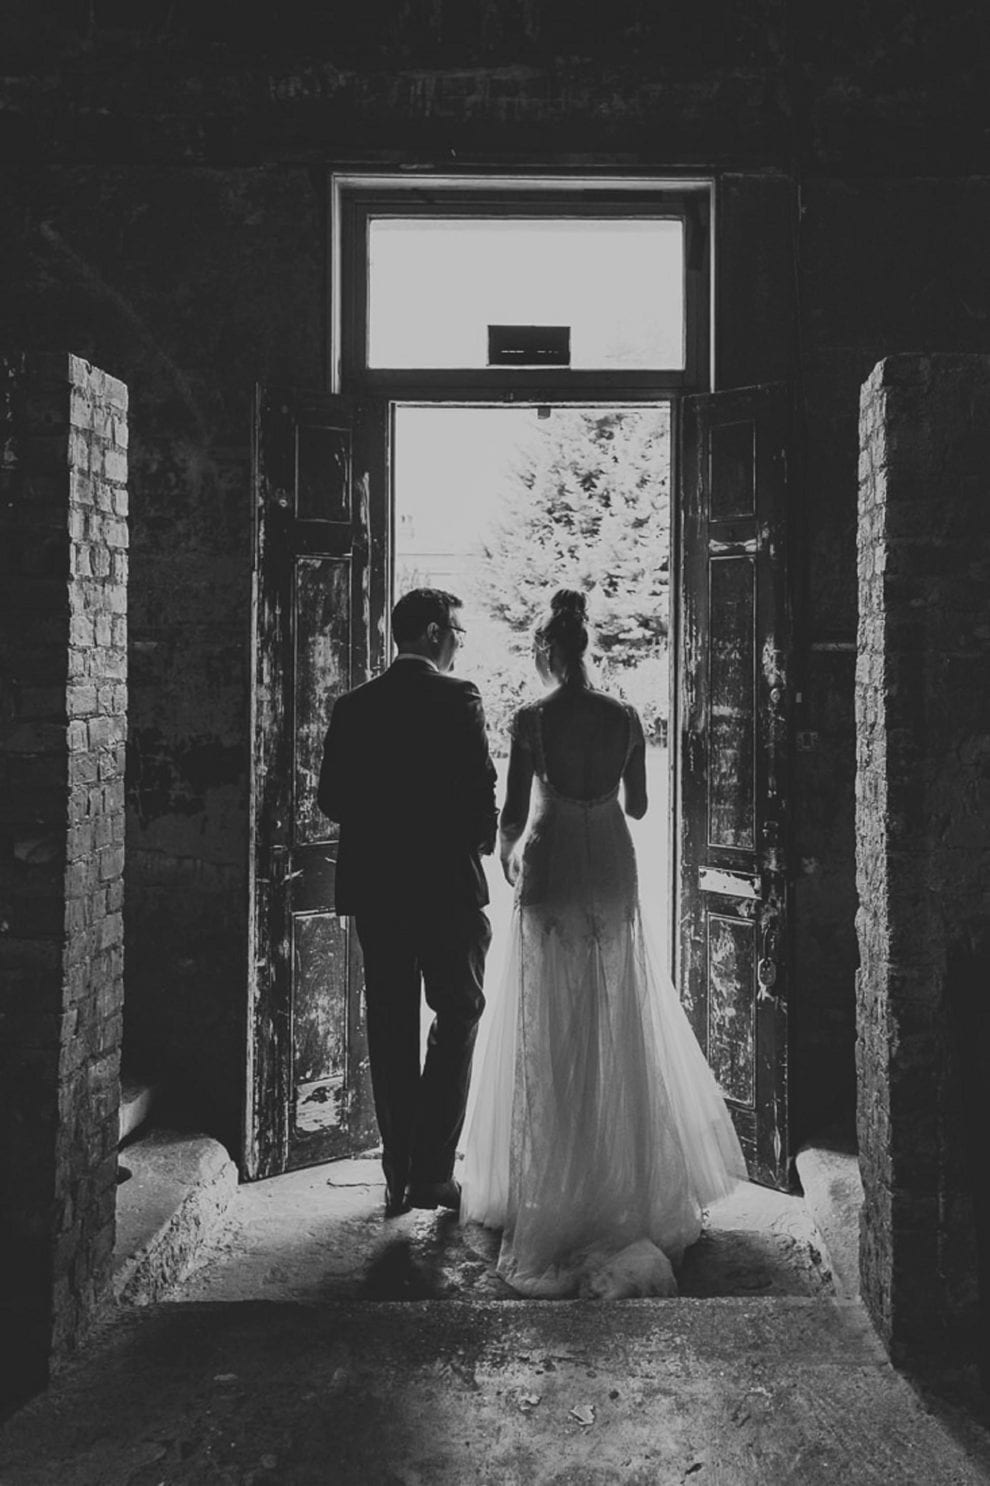 Best Wedding Photography 2016 - London and the South East Weddings (24)